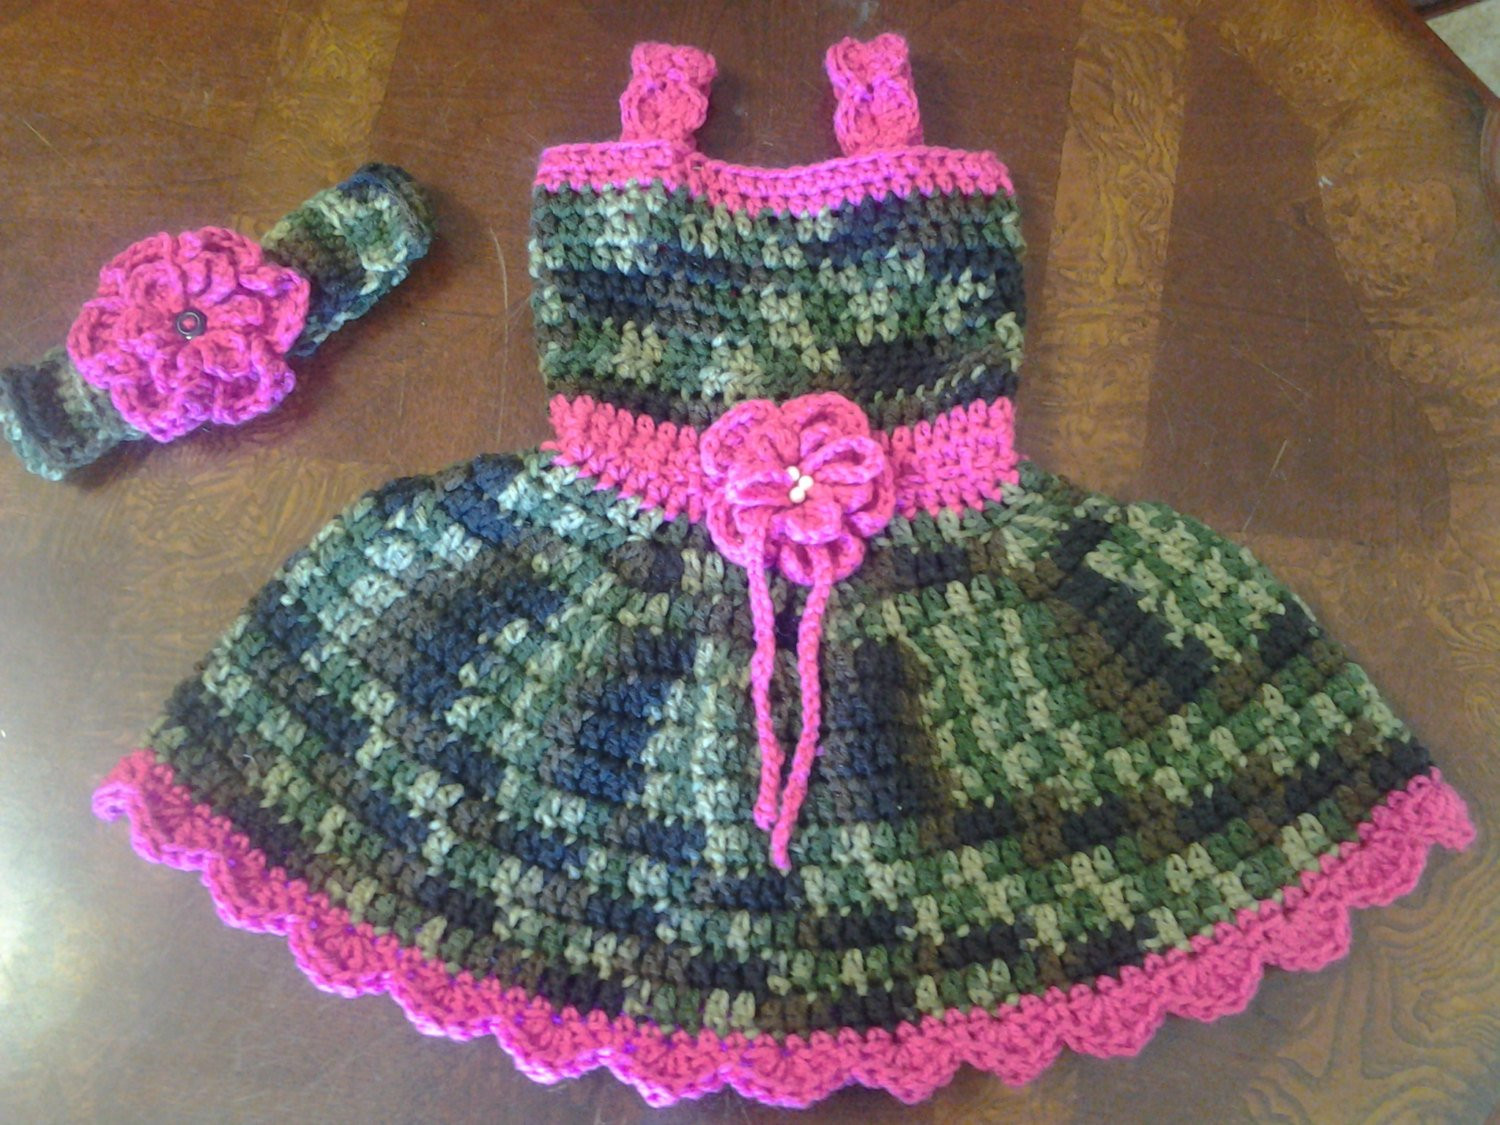 Beautiful Camo and Pink Baby Dress & Headand Wirh Flower Easter Dress Pink Camouflage Yarn Of Charming 42 Pics Pink Camouflage Yarn